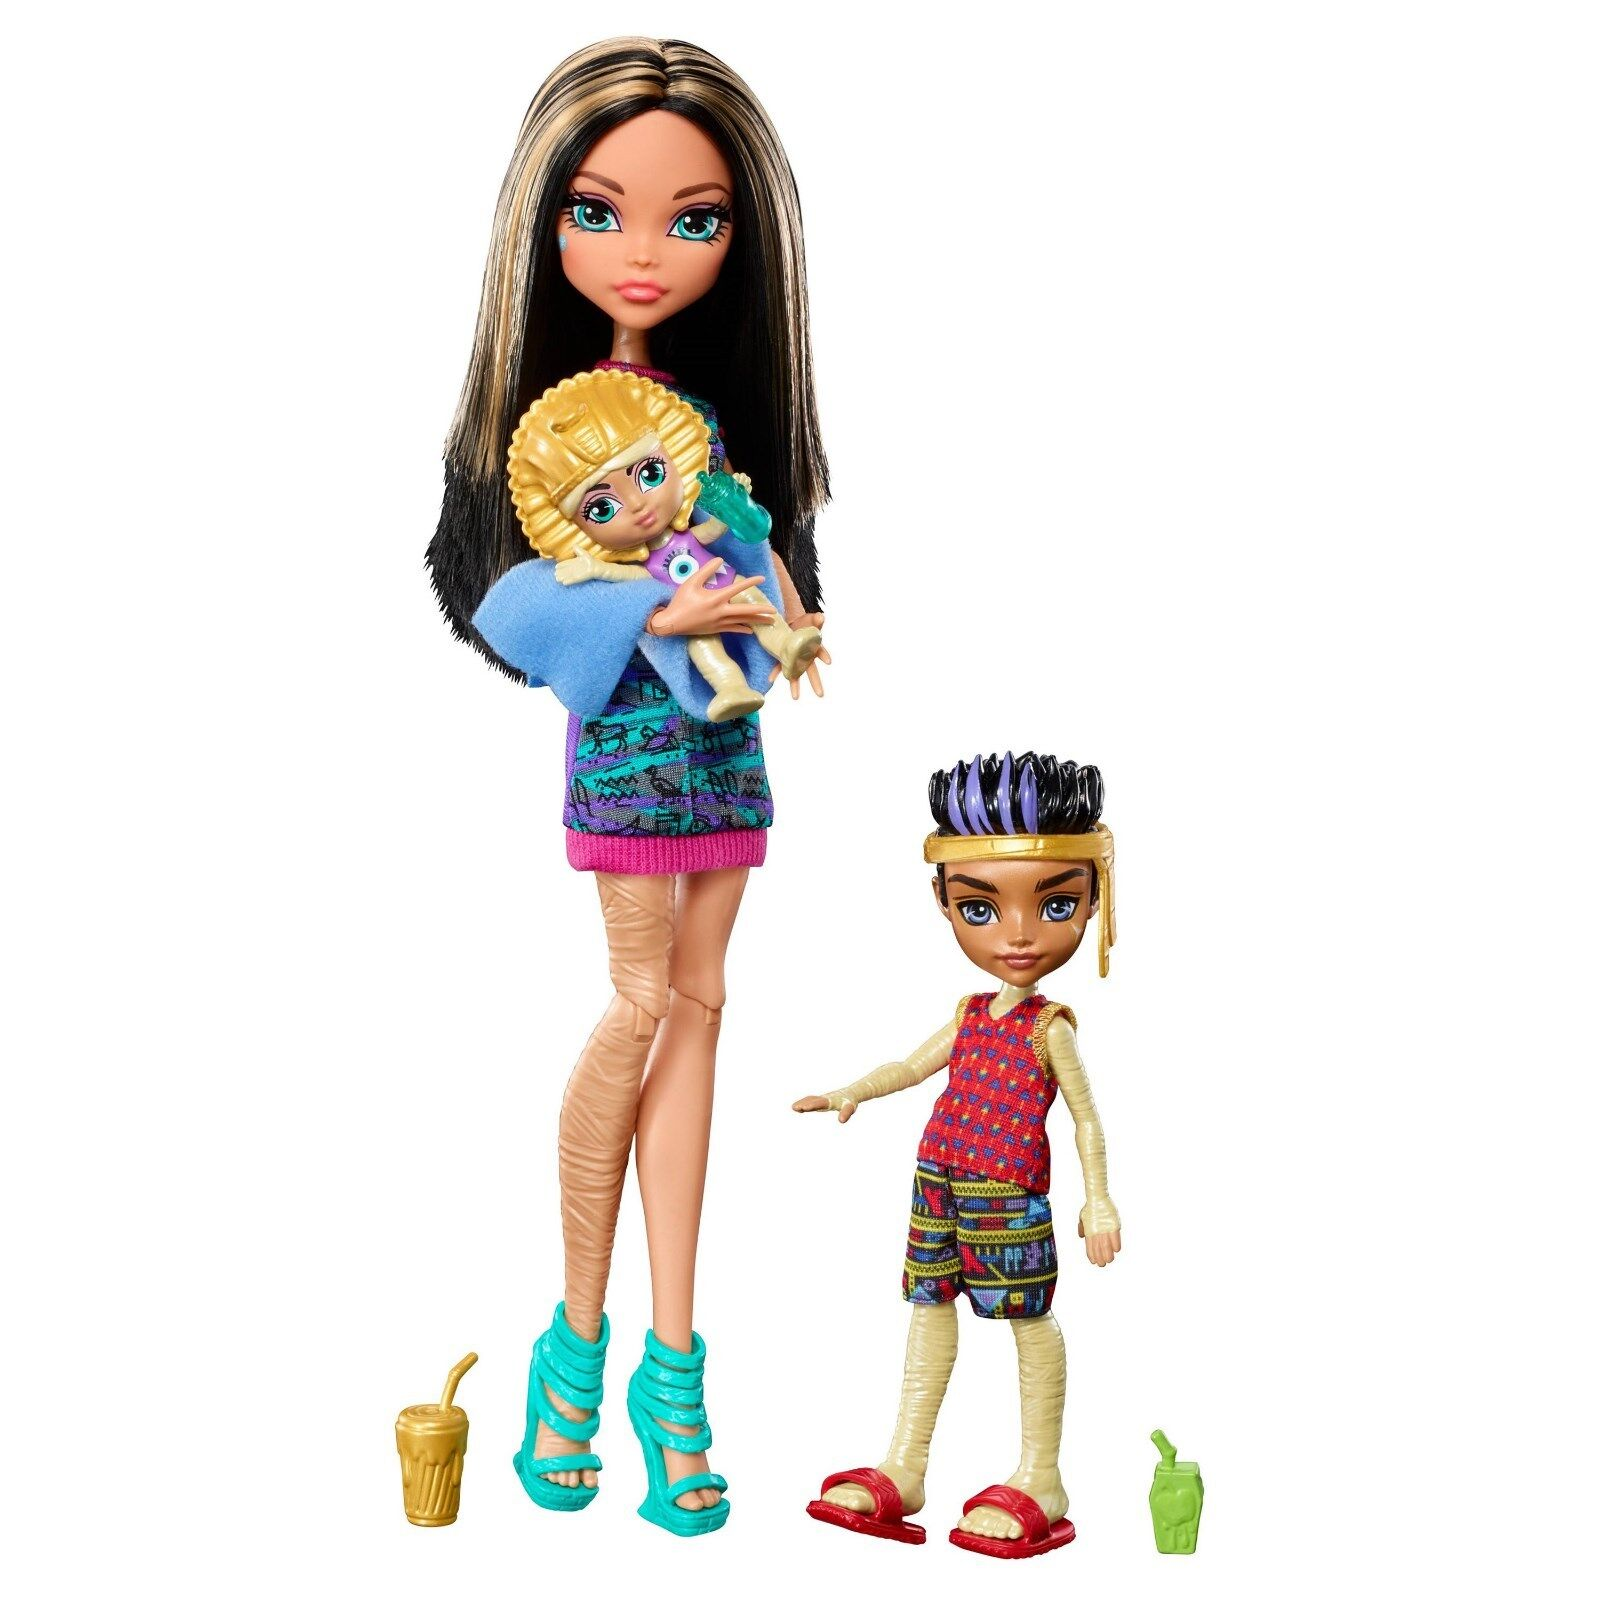 Monster High - Monster High Monster Family CLEO DE NILE & LUX and SANDY DE NILE Doll Set - NEW